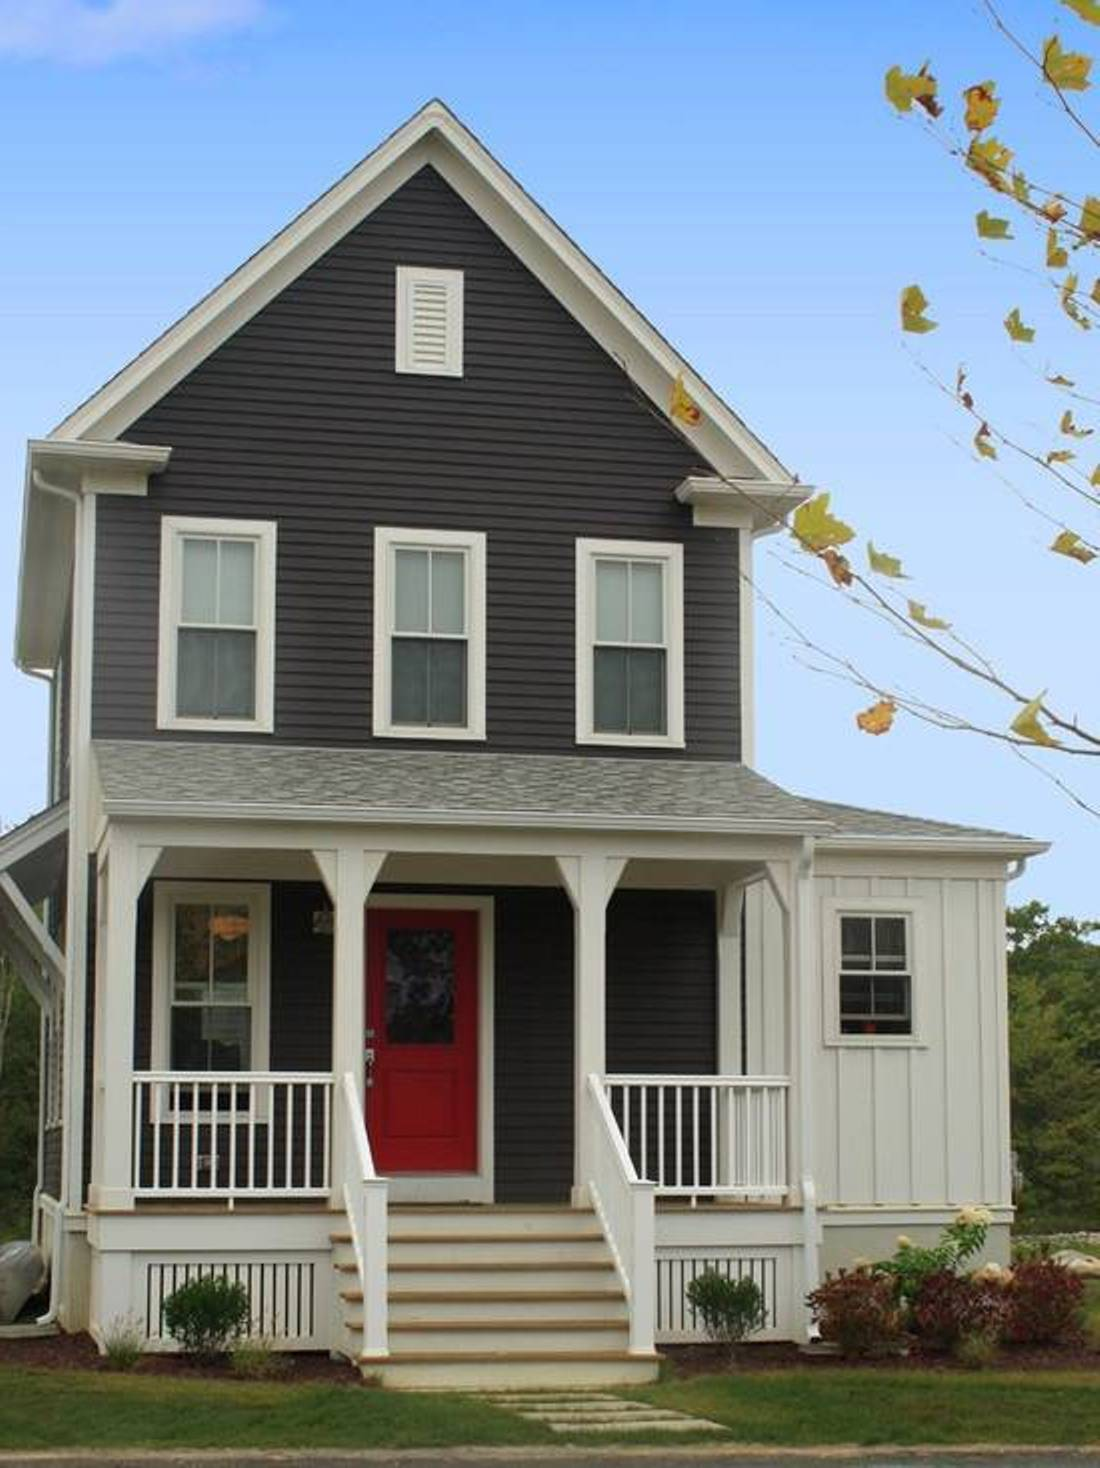 Exterior Colors for Houses Ideas | HomesFeed